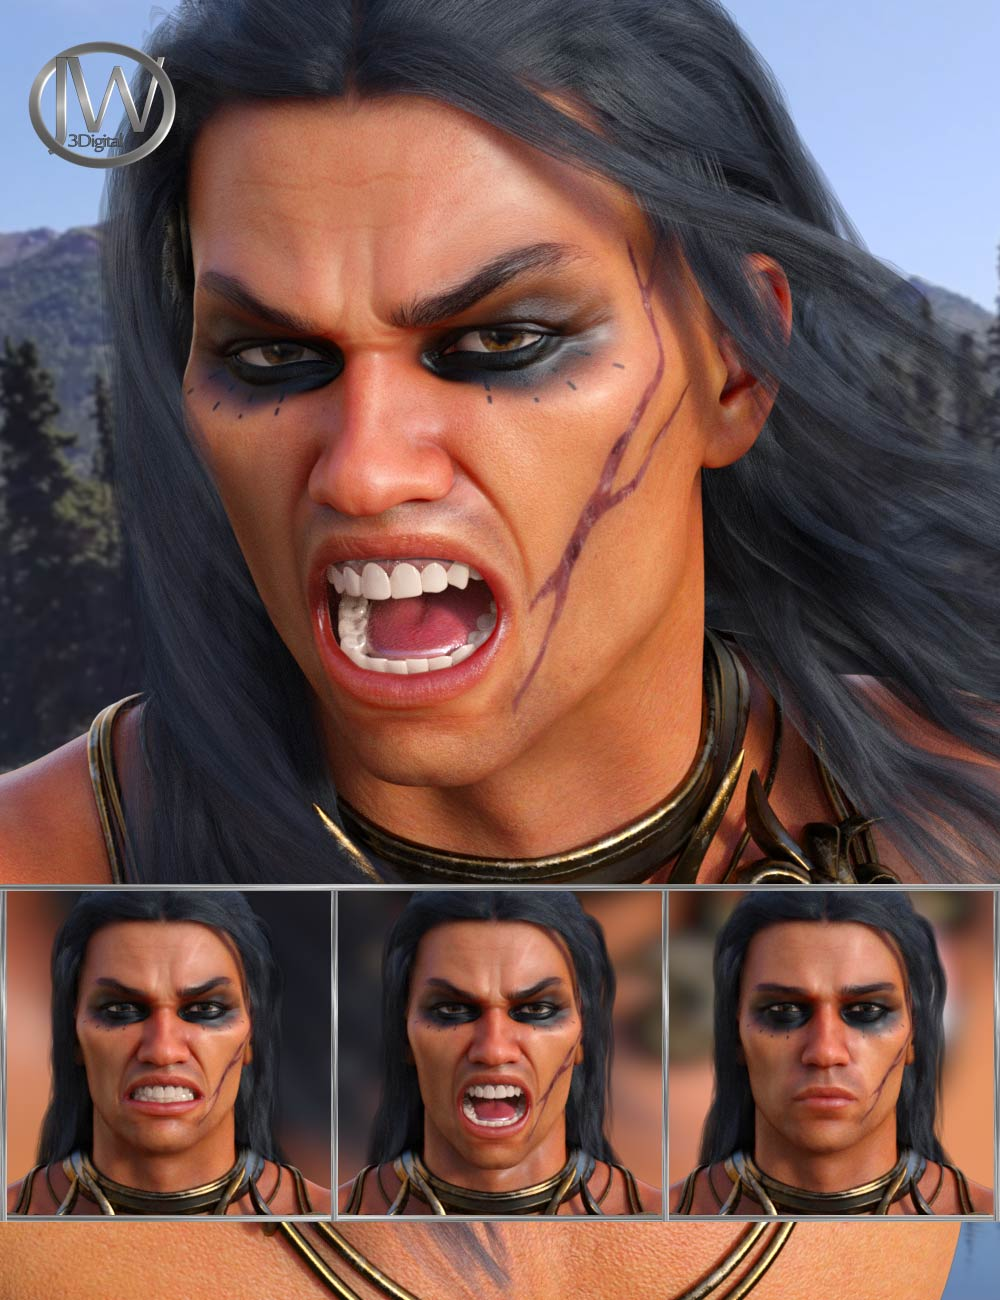 Enraged - Expressions for Genesis 8 Male and Scar 8 by: JWolf, 3D Models by Daz 3D